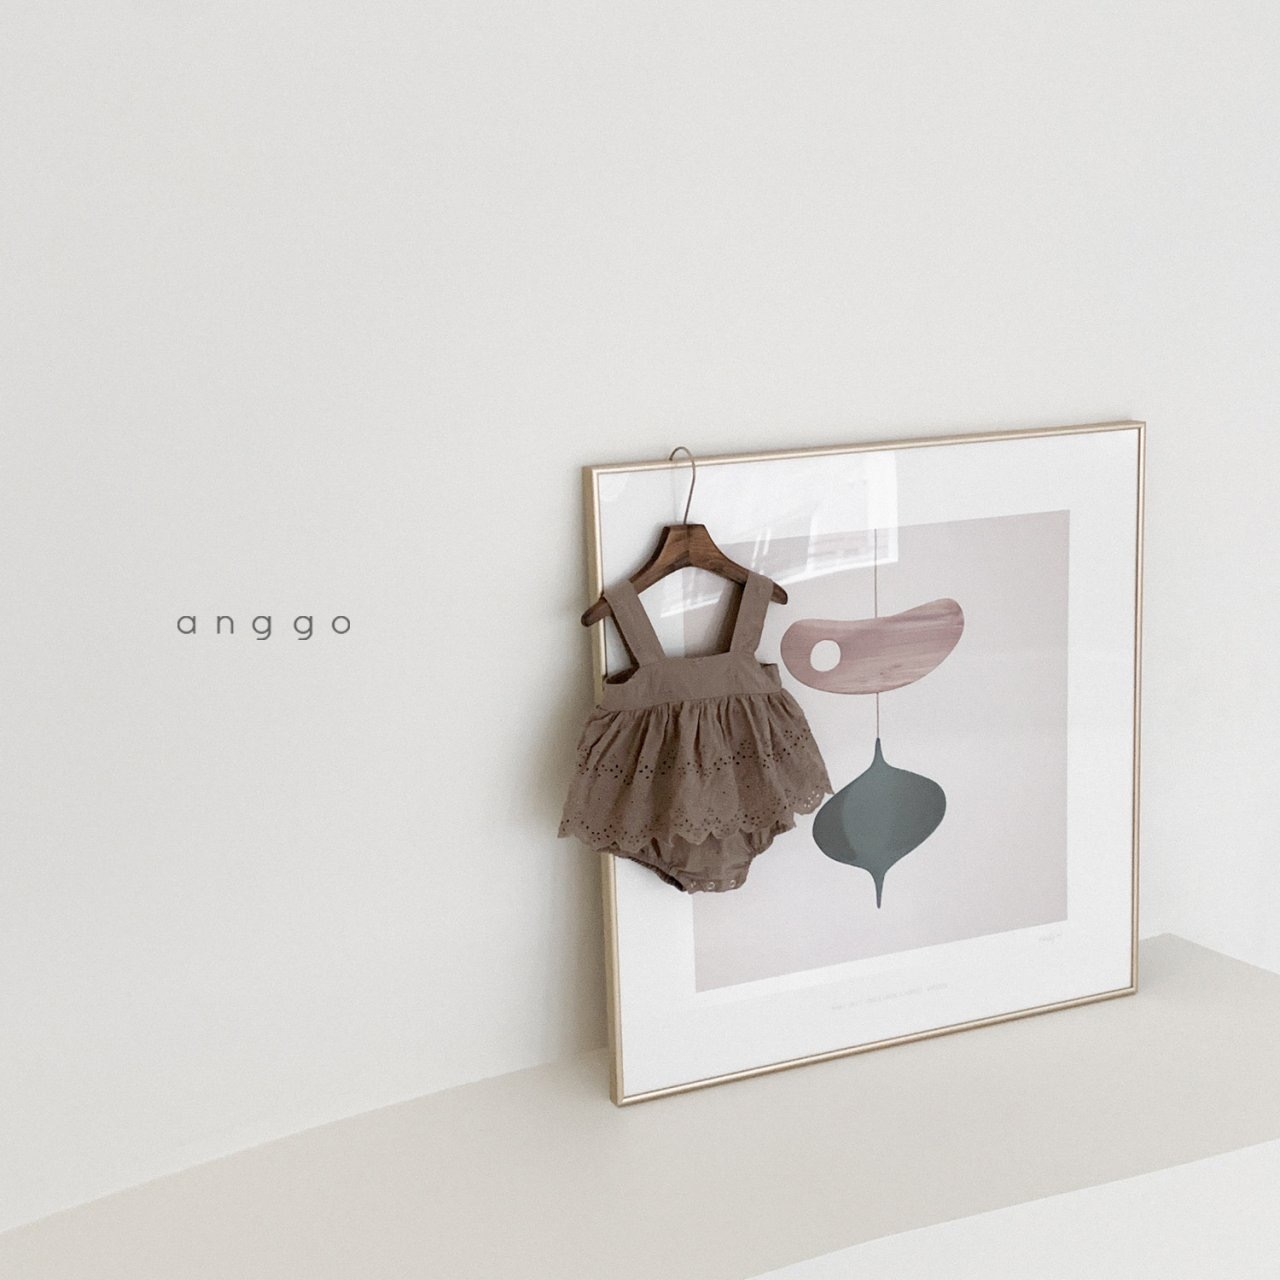 NO.1416.  Mary bustier suit / anggo